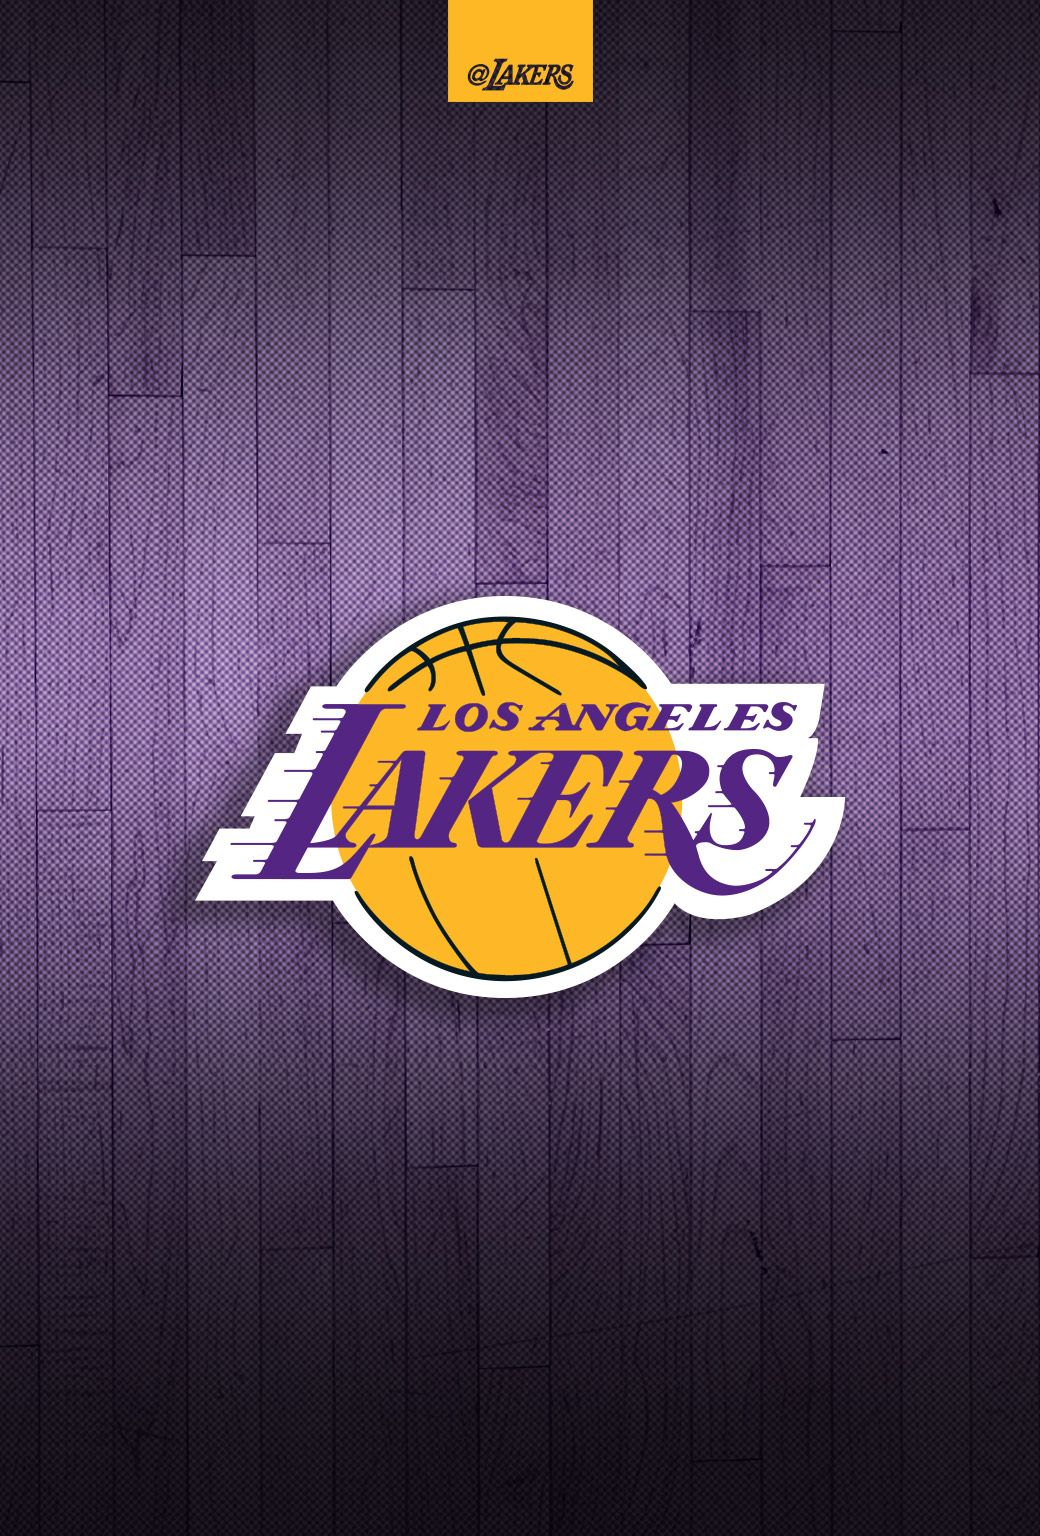 Lakers Wallpaper Android Lakers wallpaper, Los angeles